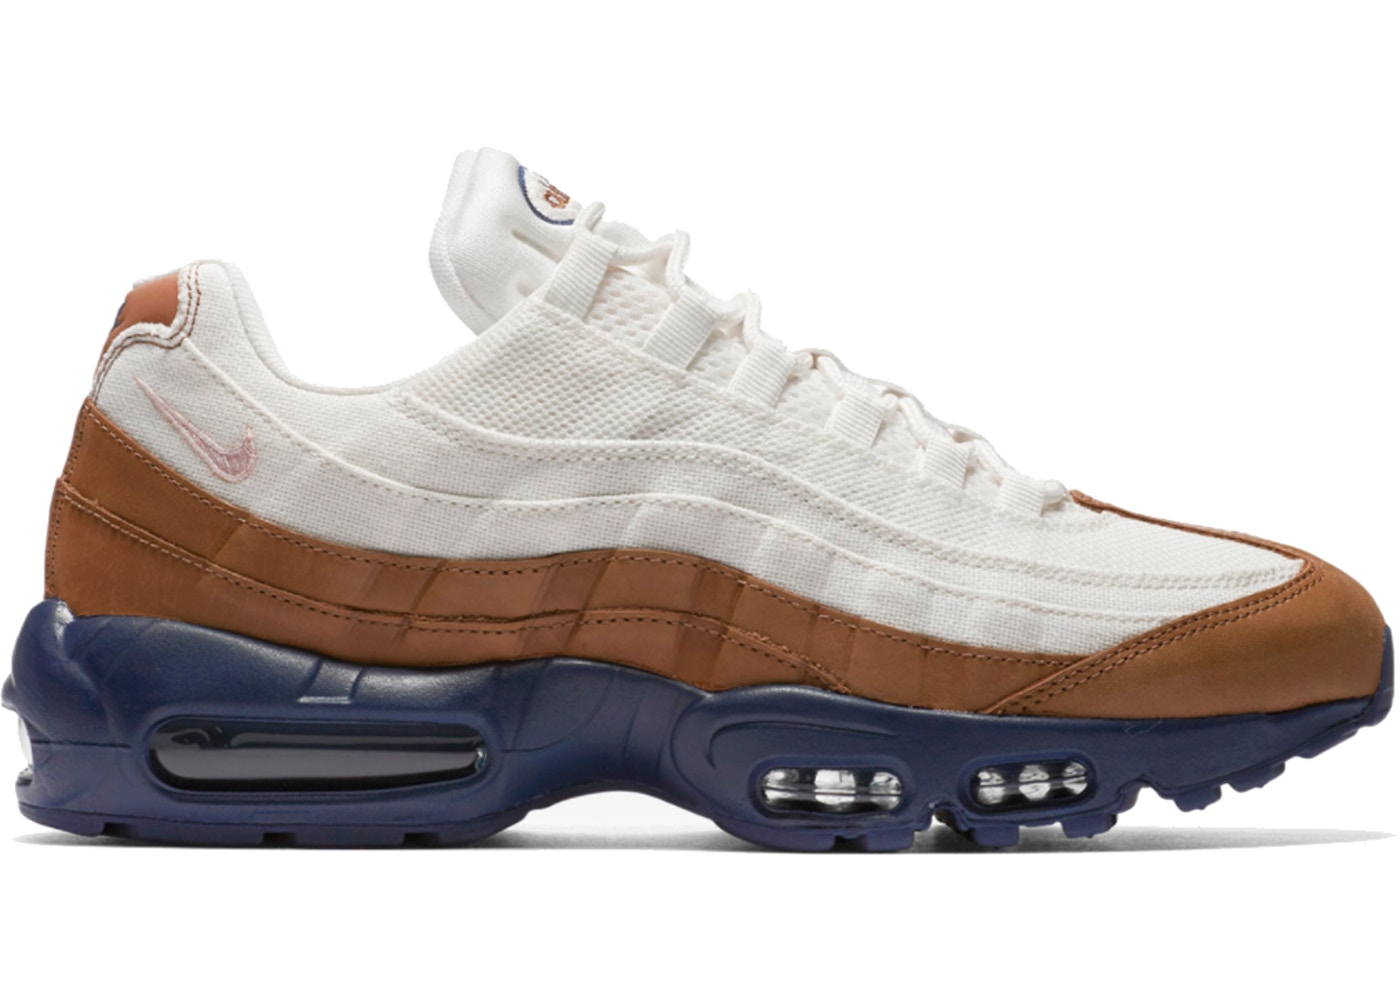 94be64517383 Air Max 95 Ale Brown - 538416-200